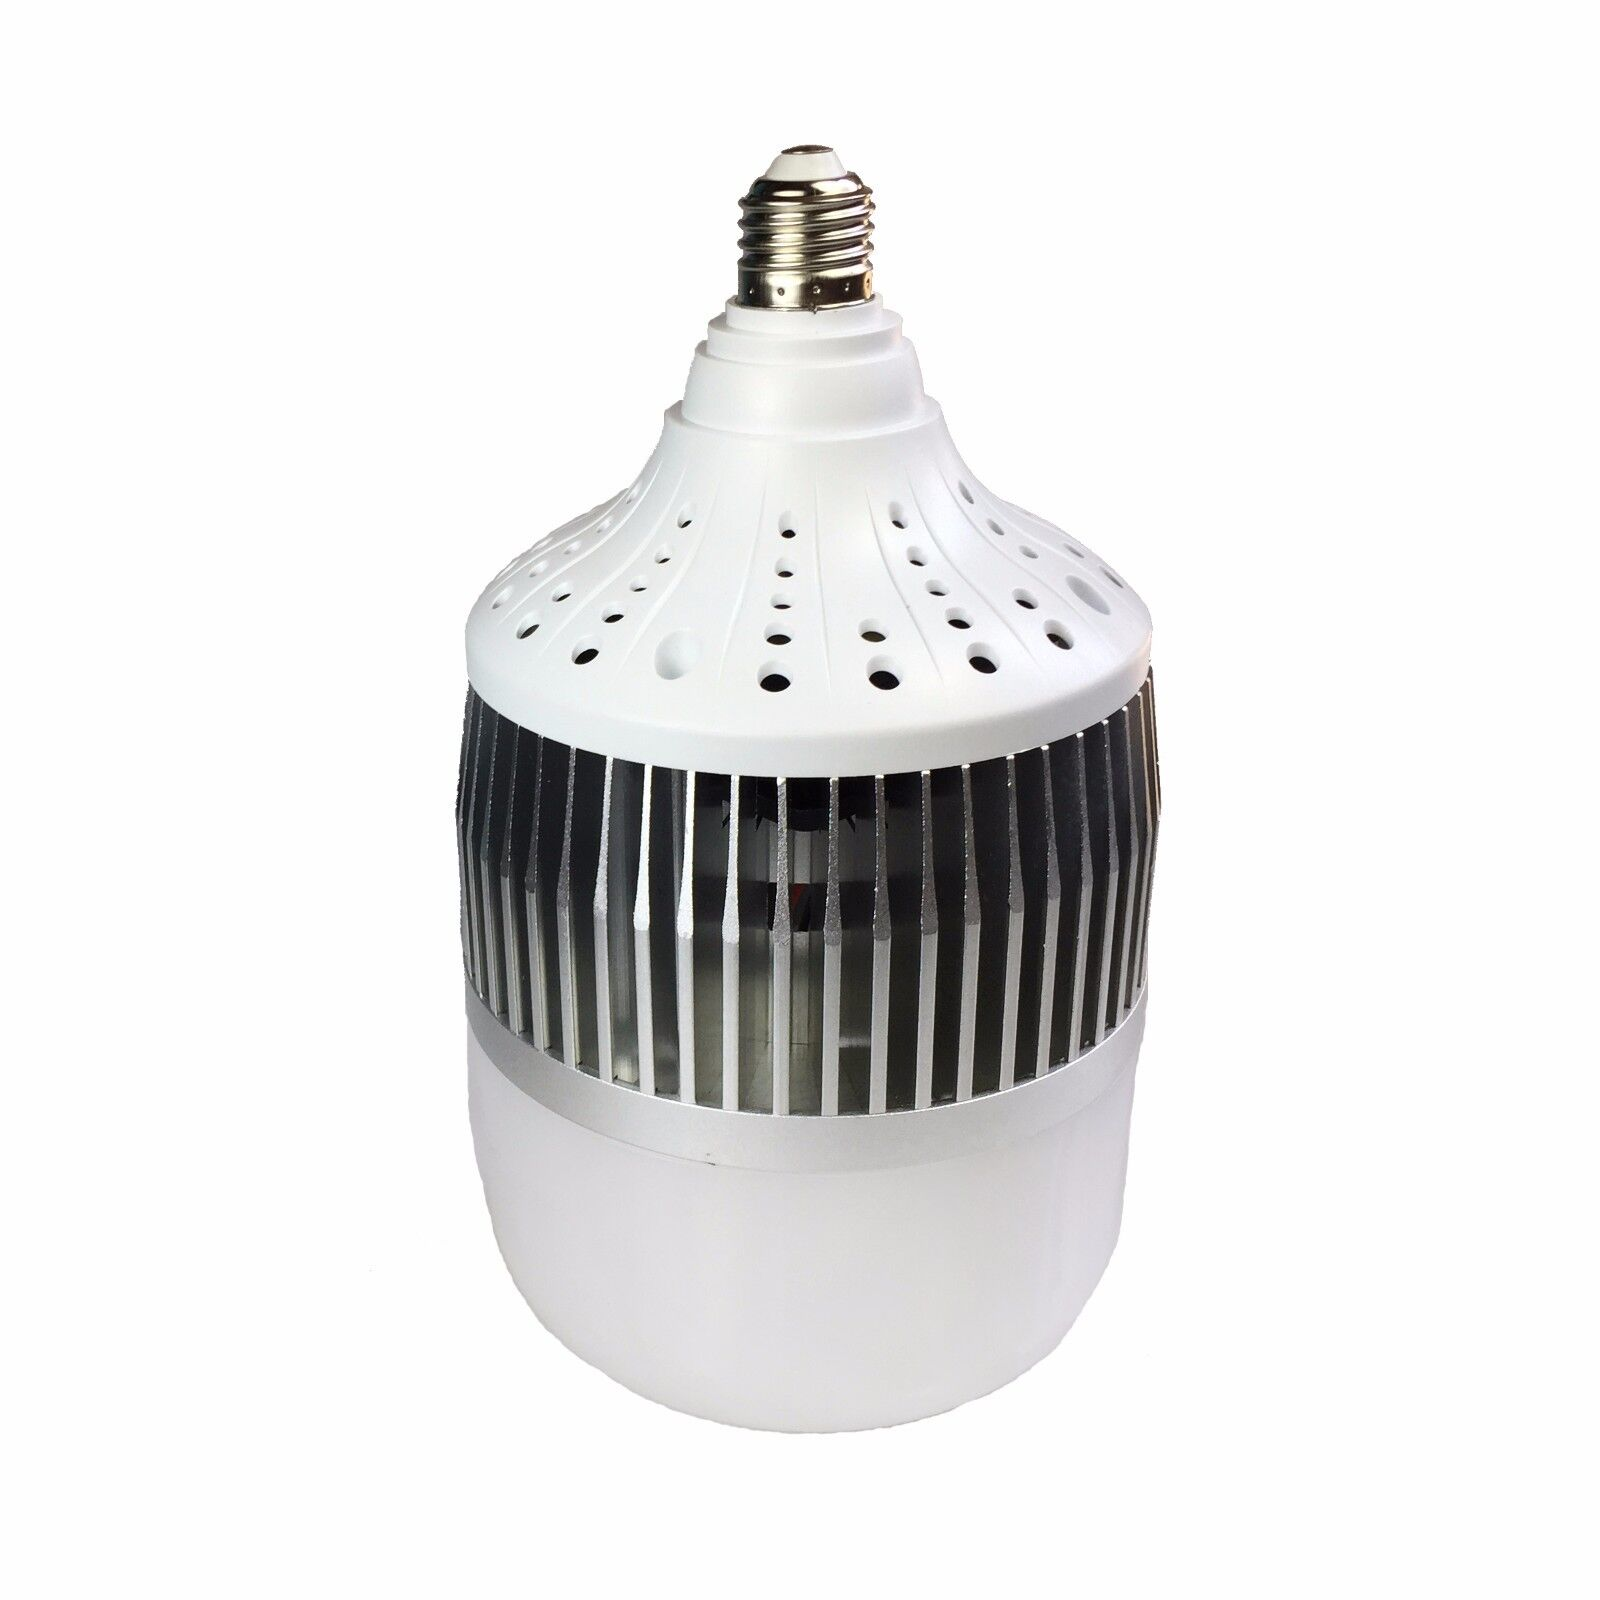 high lighting led bay product light en